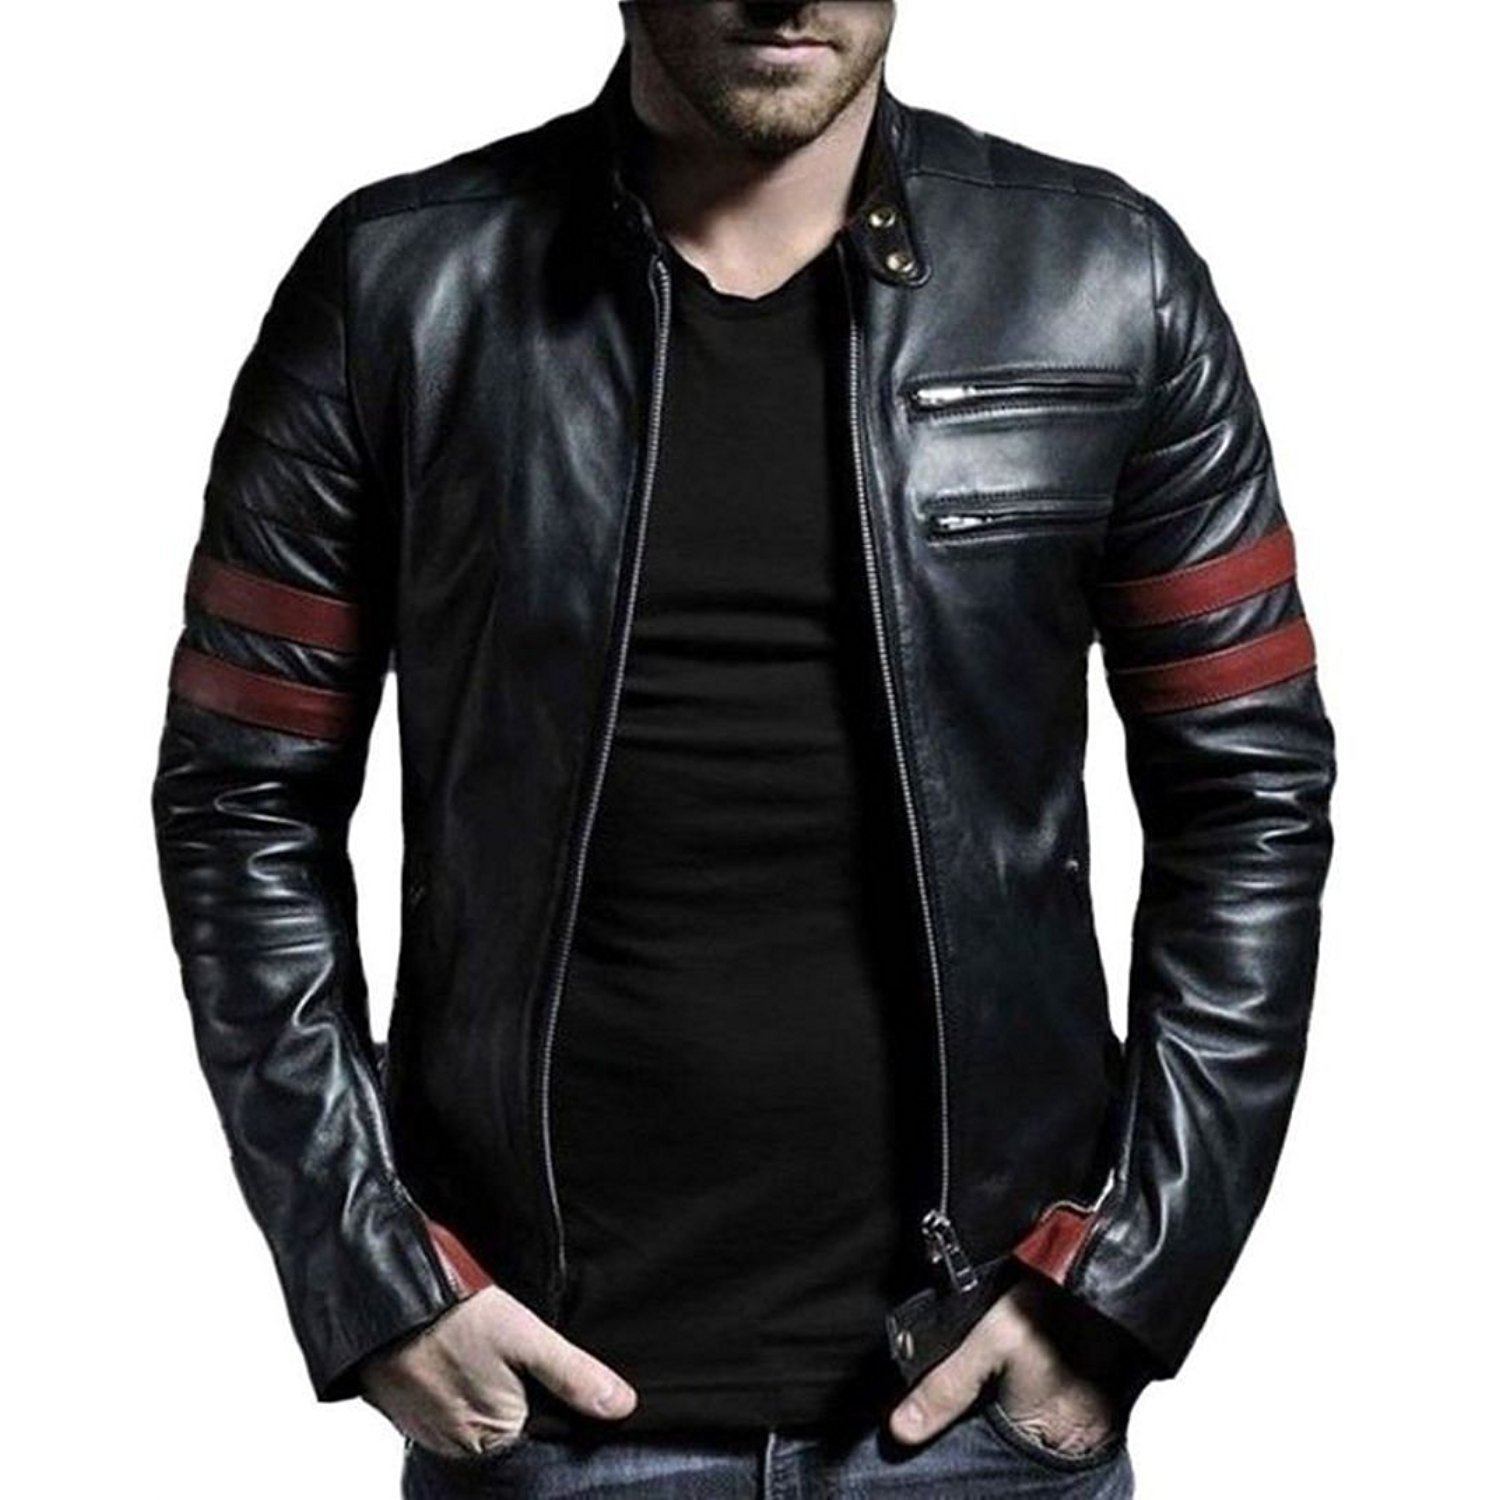 ad60cbad80b Buy Leather Motorcycle Jacket